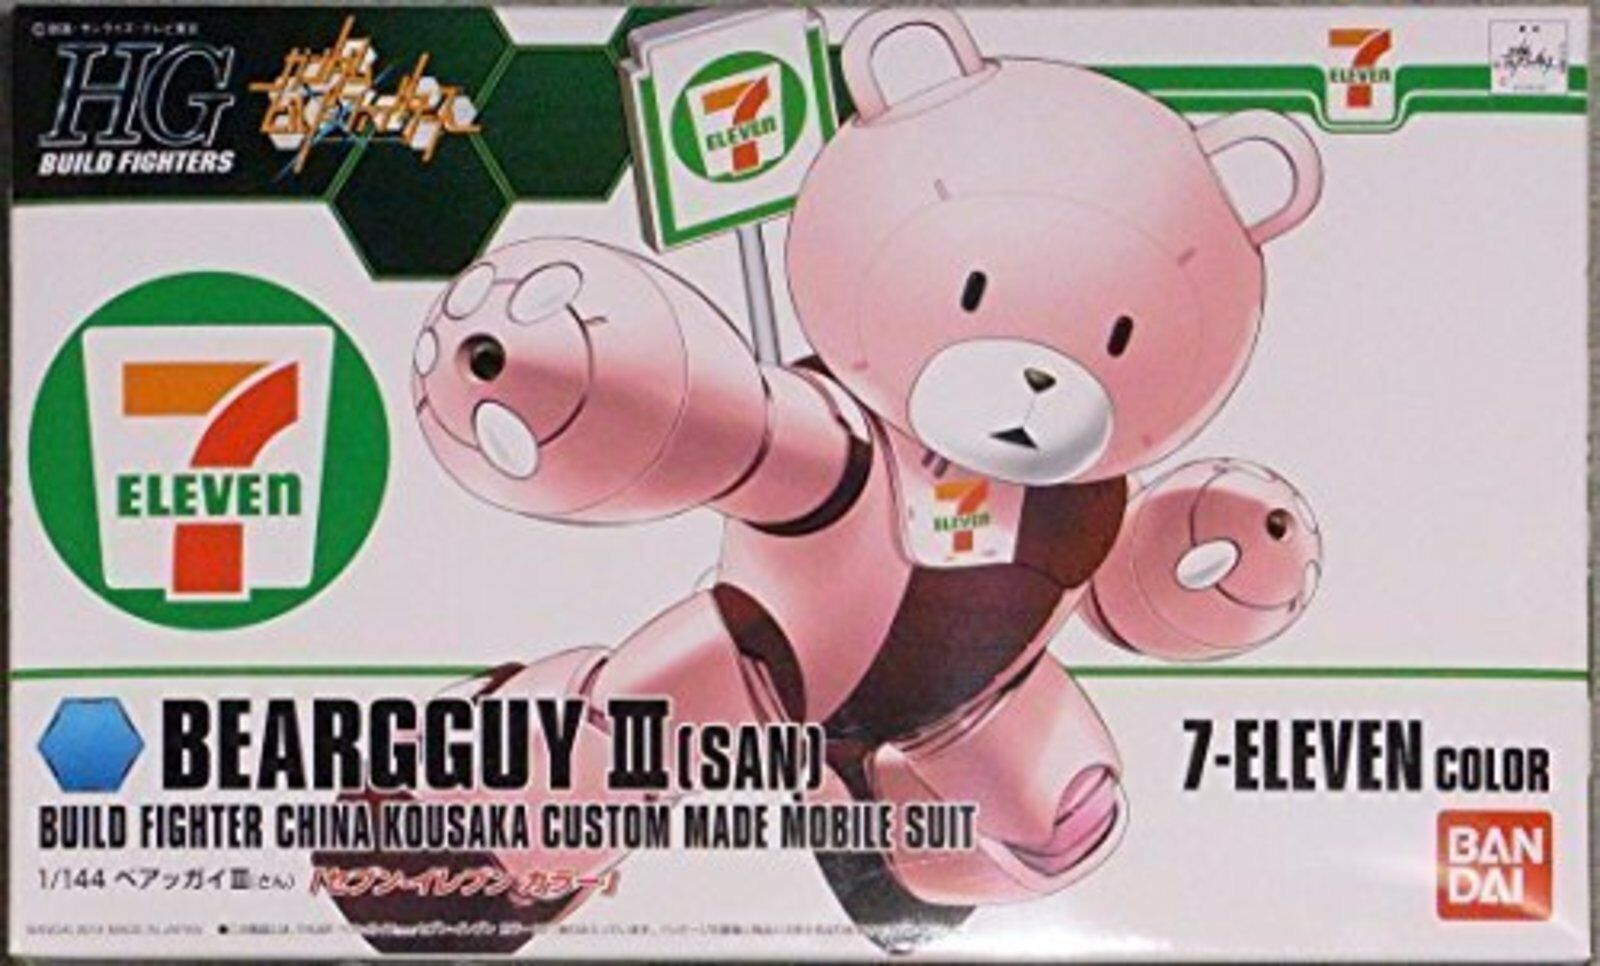 BANDAI 7-Eleven 1 144 HG Beargguy III (SAN) 7-11 color Limited Edition RARE F S